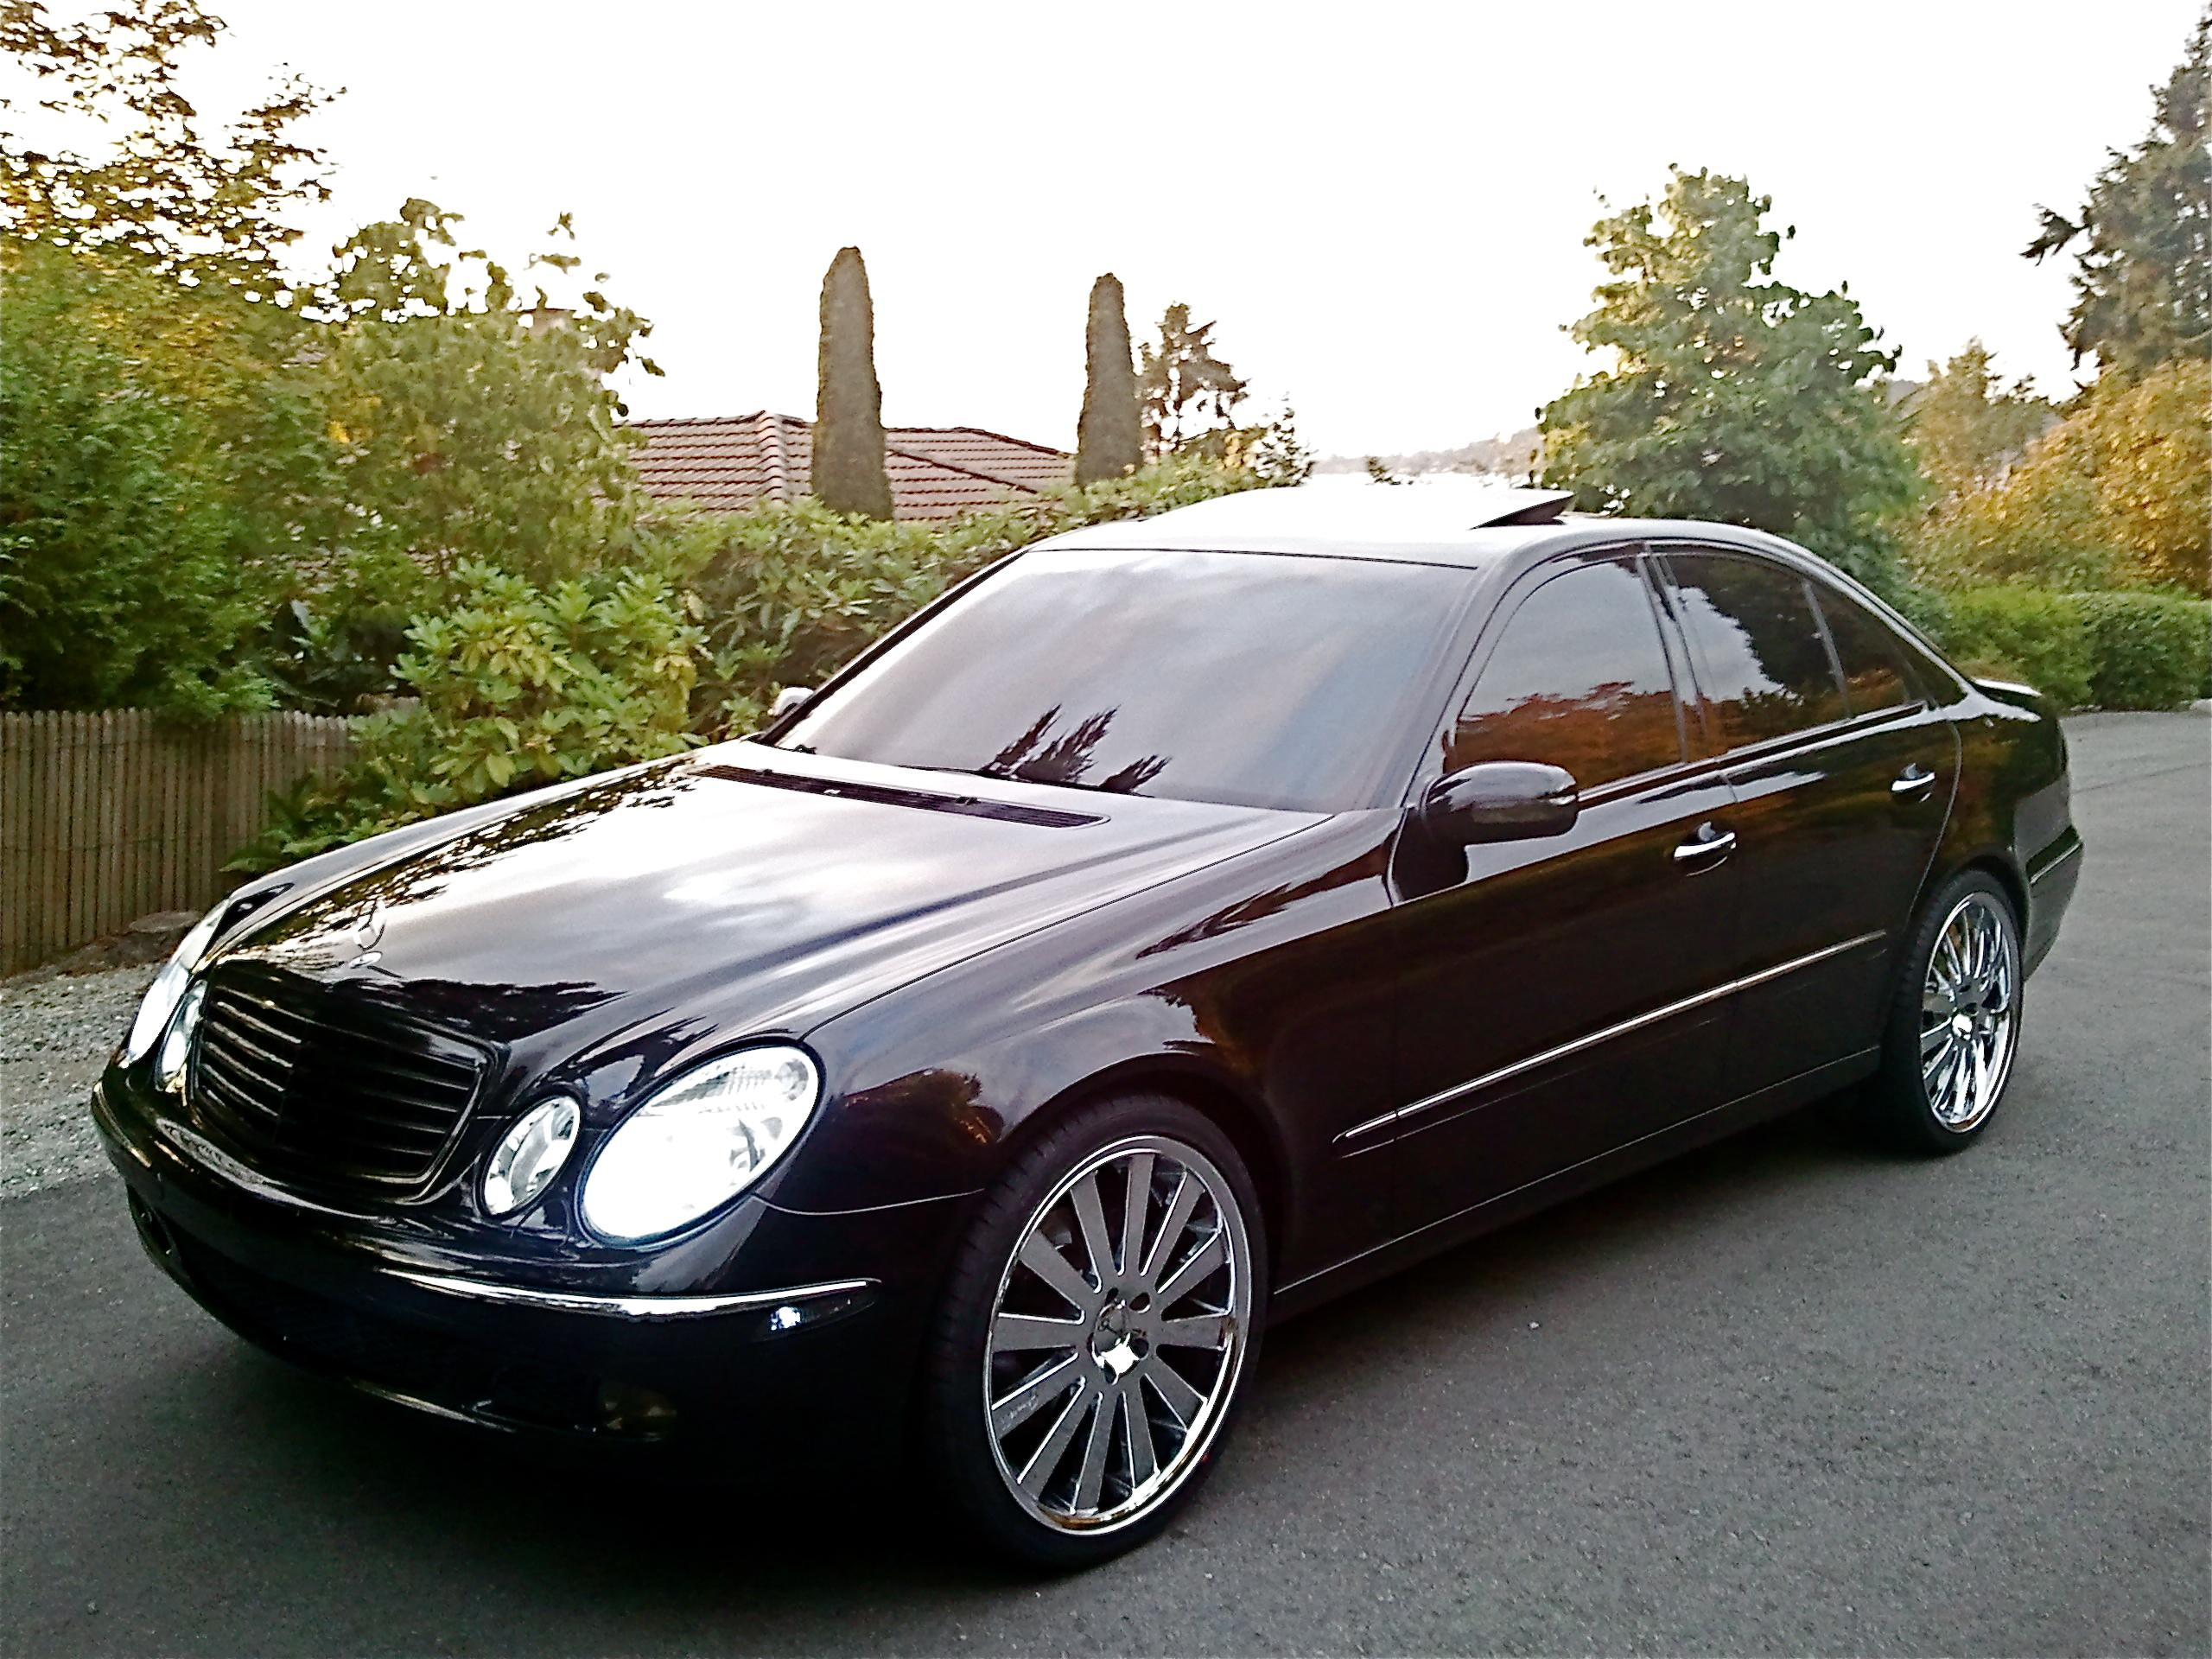 Eurowhipz666 2003 mercedes benz e classe500 sedan 4d specs for Mercedes benz e500 2003